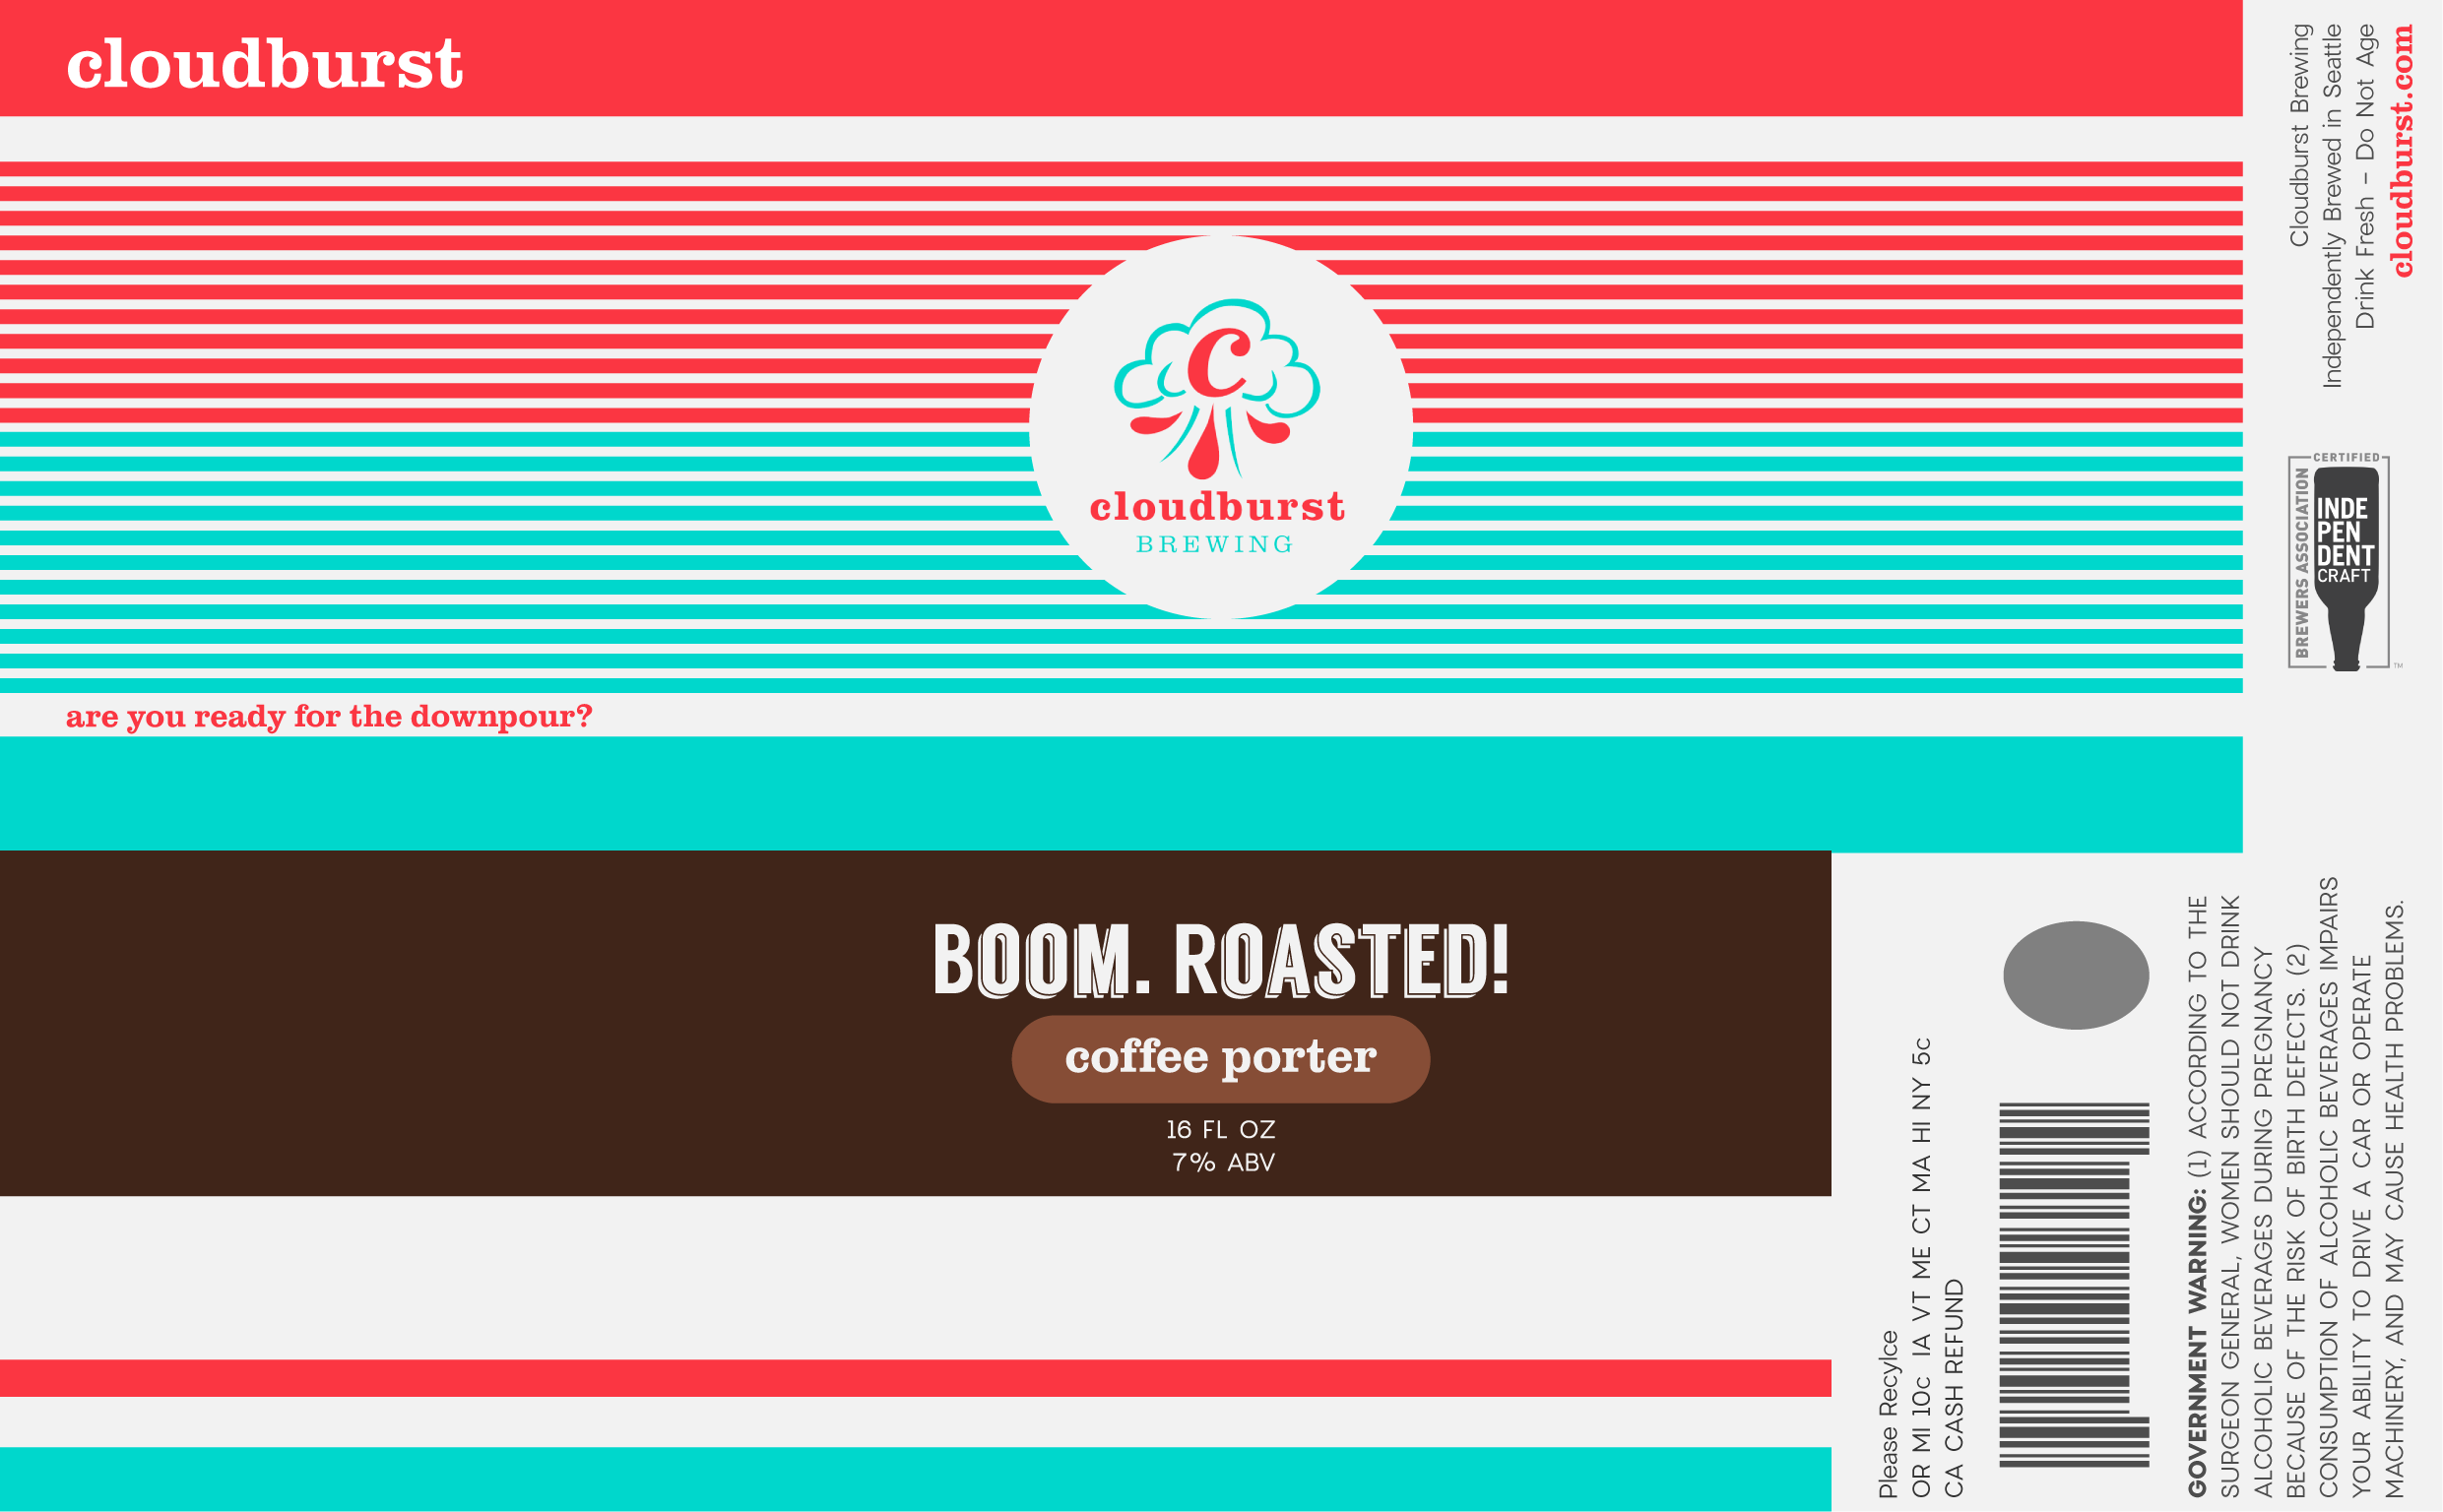 cloudburst-boom-roasted-version5-05.png